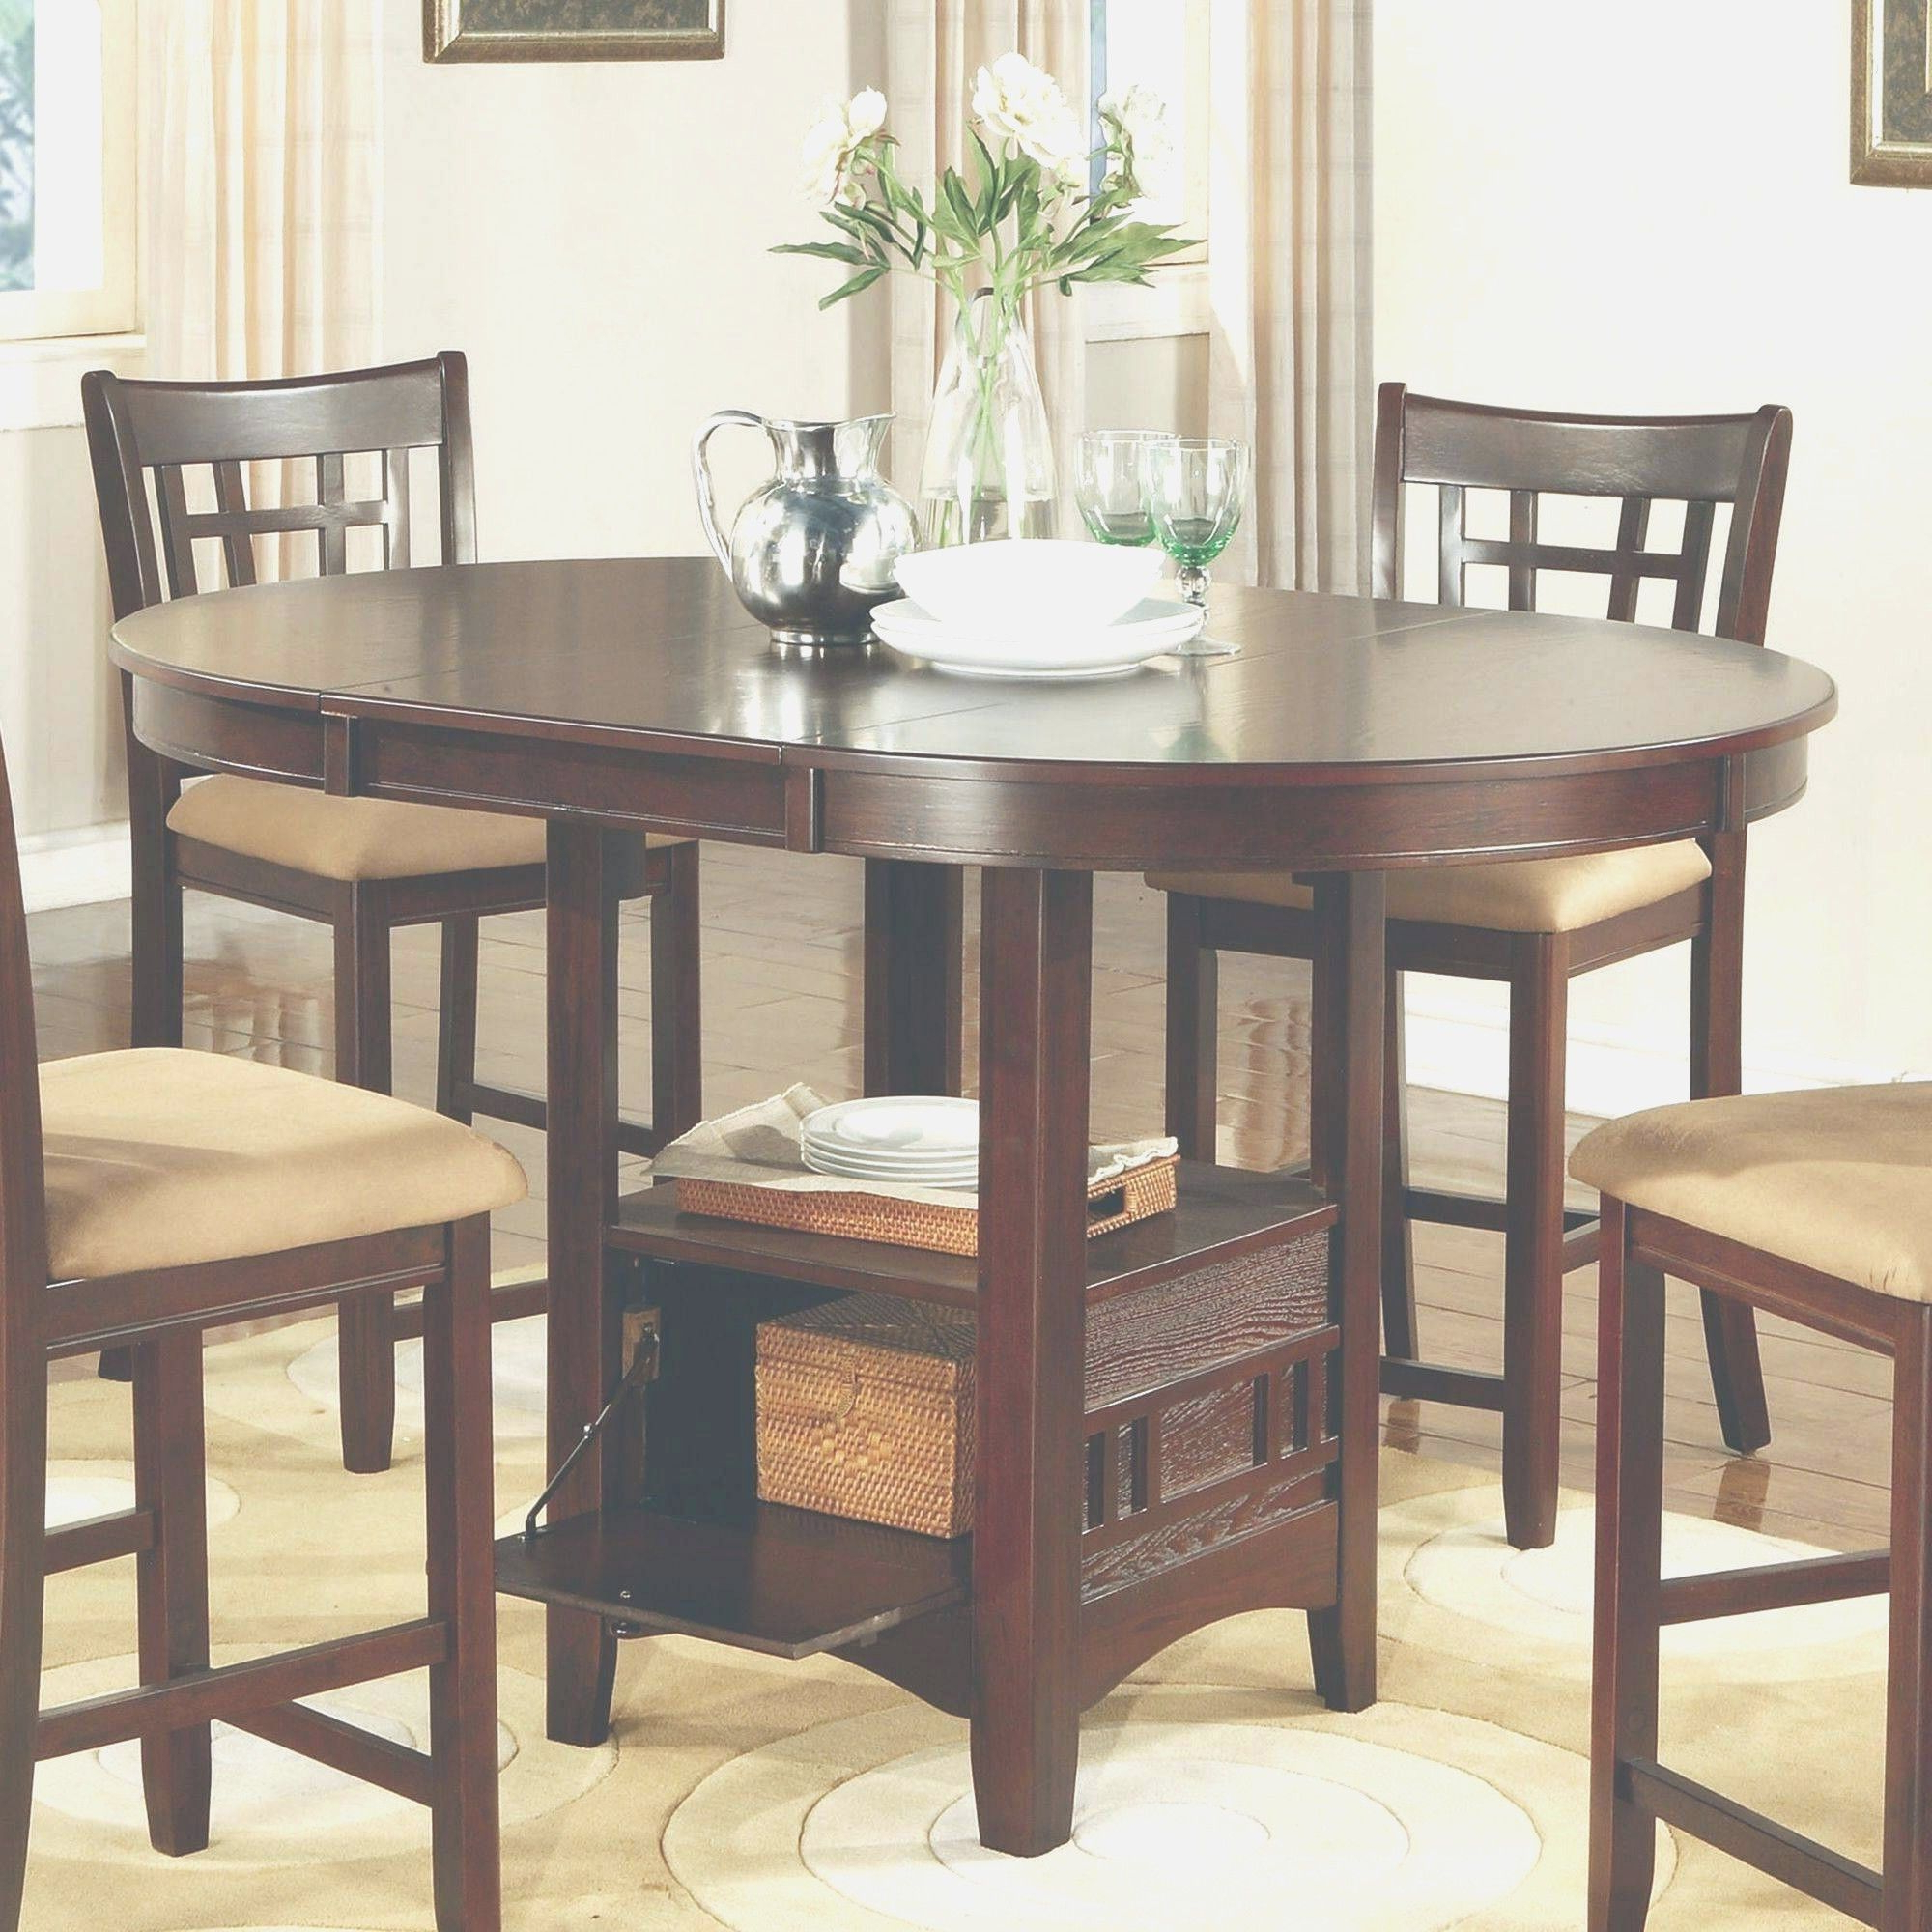 2019 Heavy Duty Kitchen Chairs – Heavy Duty Kitchen Chairs, Heavy Duty Inside Ephraim 5 Piece Dining Sets (View 1 of 25)